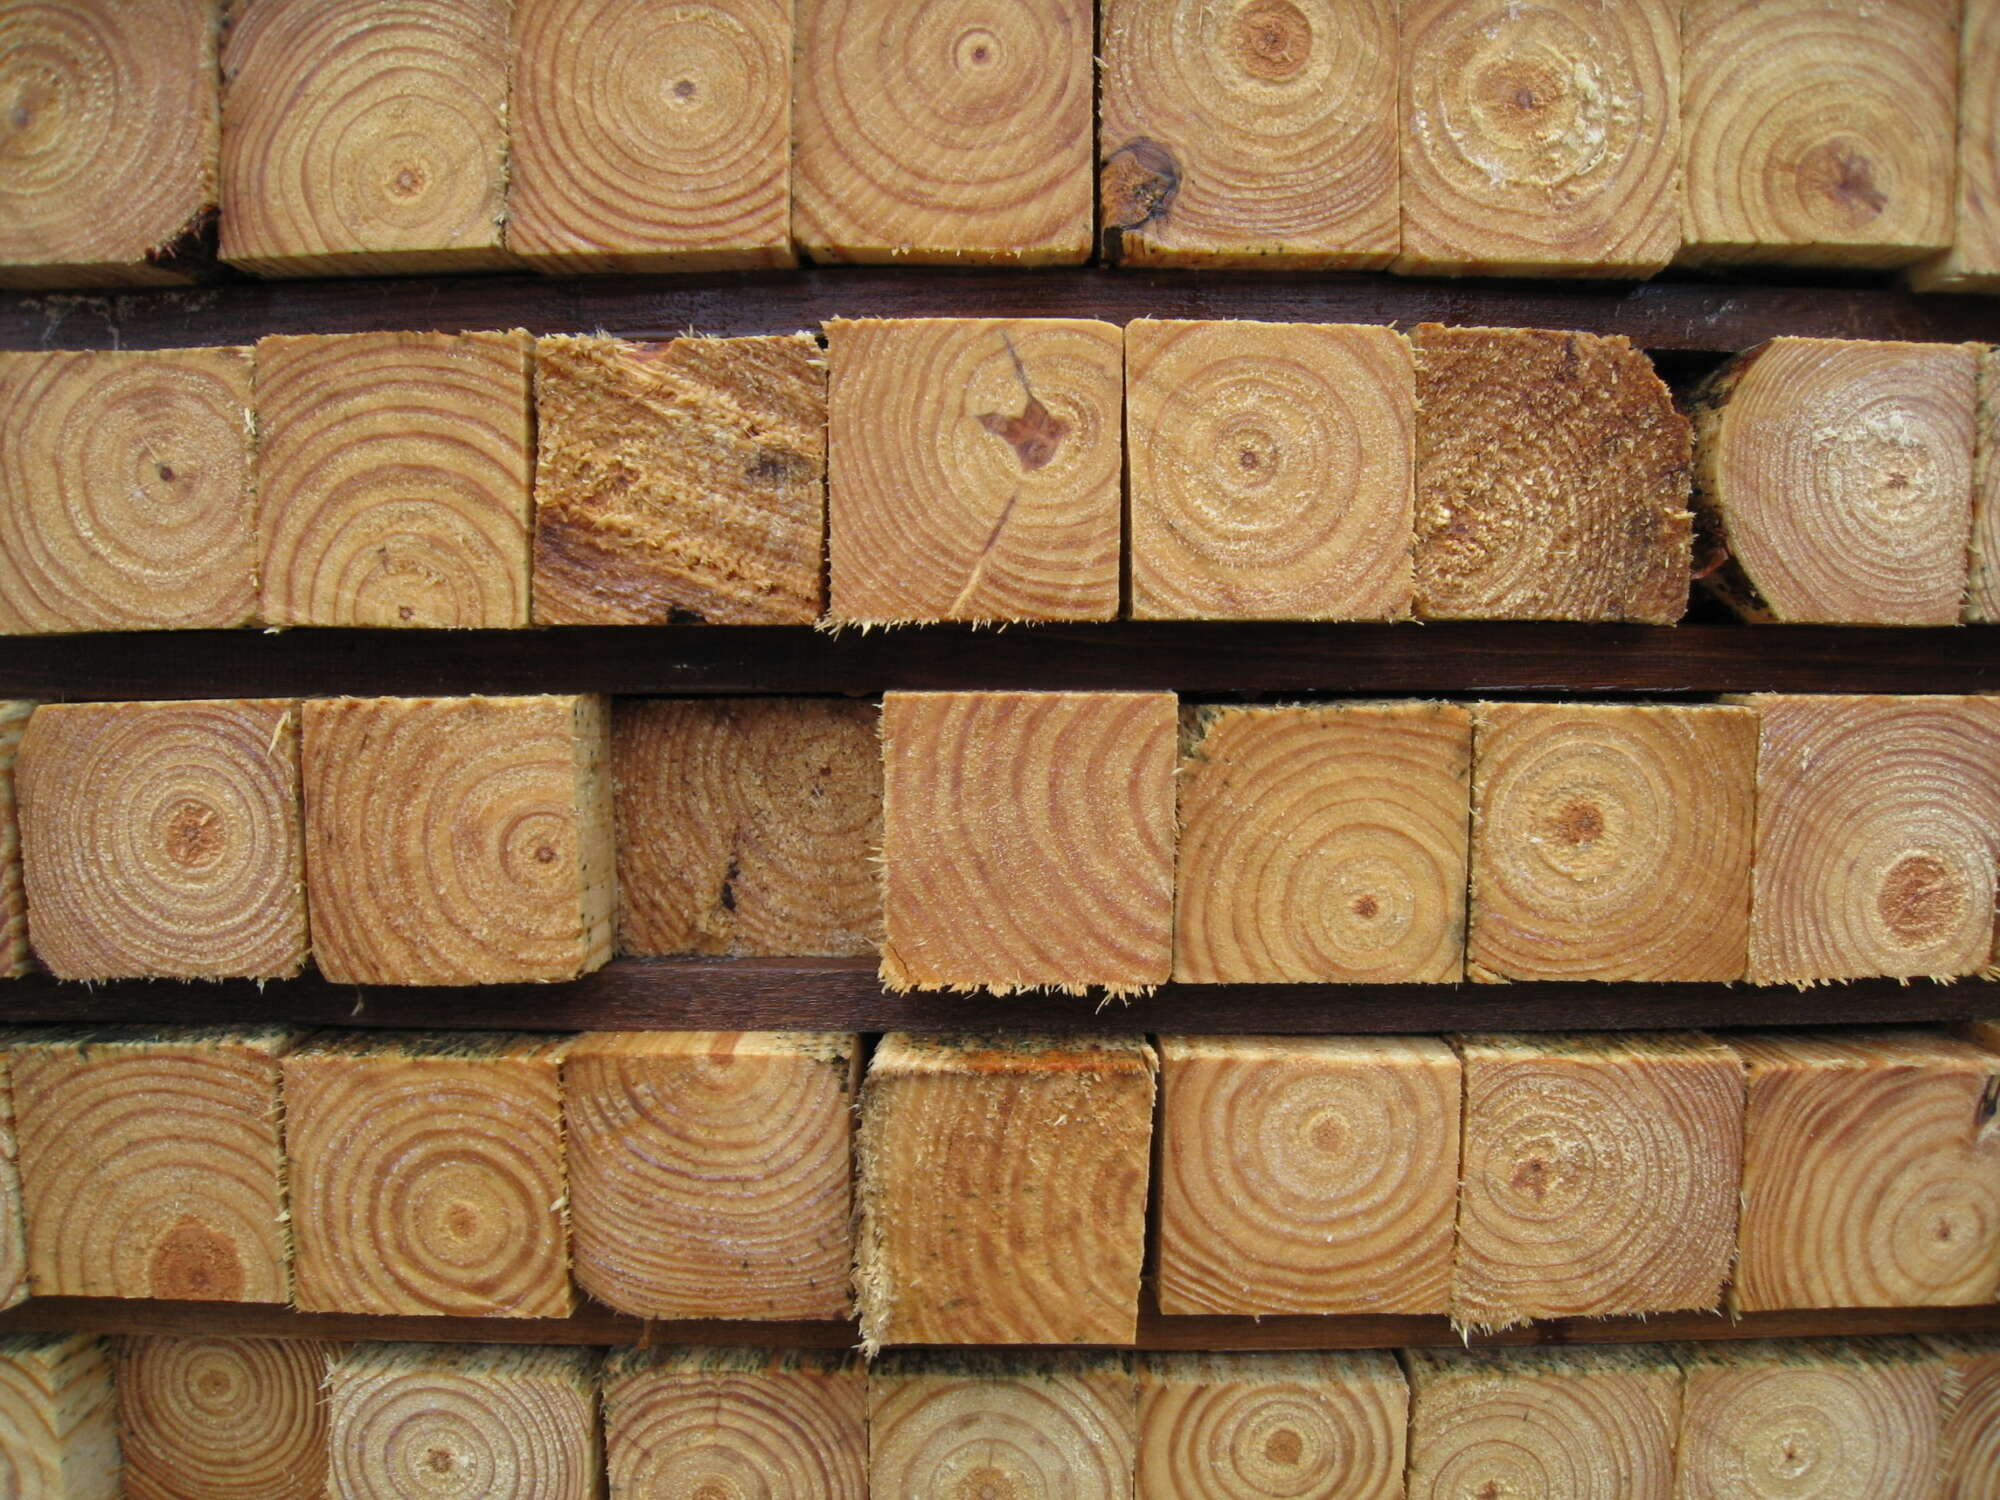 Pieces of lumber arranged in a grid